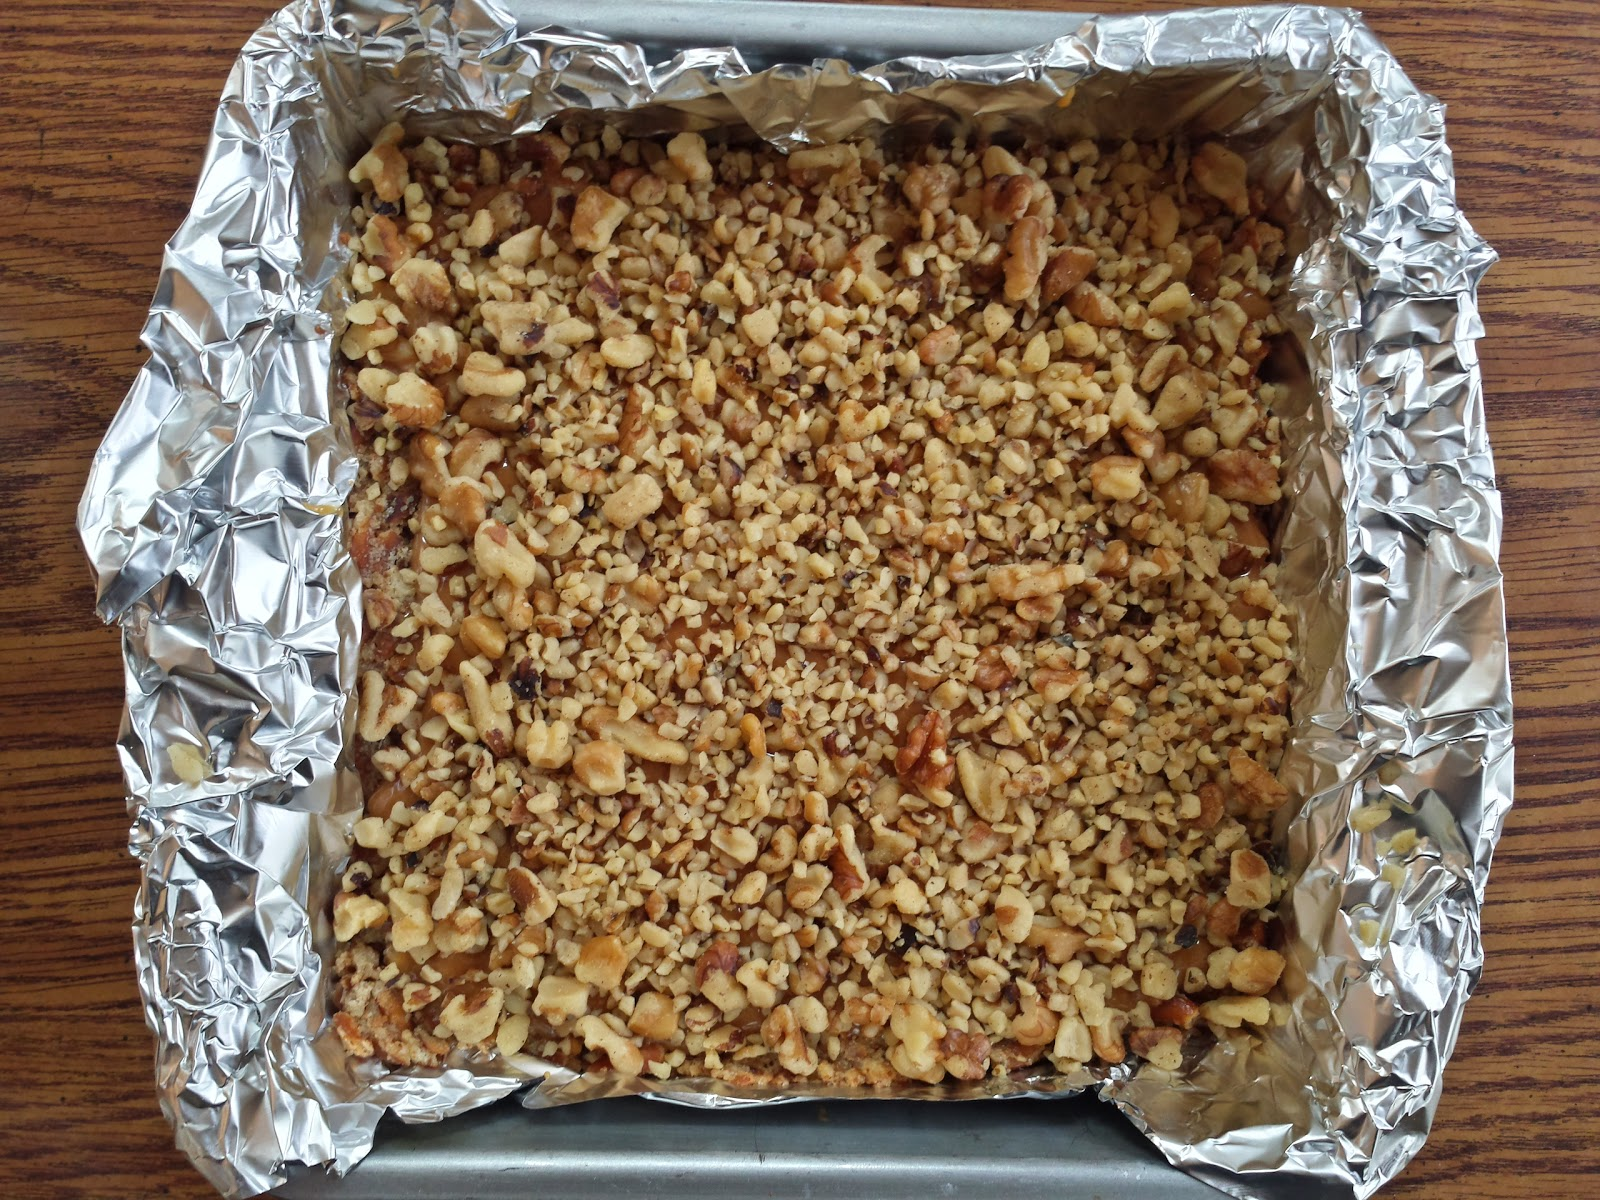 walnuts sprinkled on top